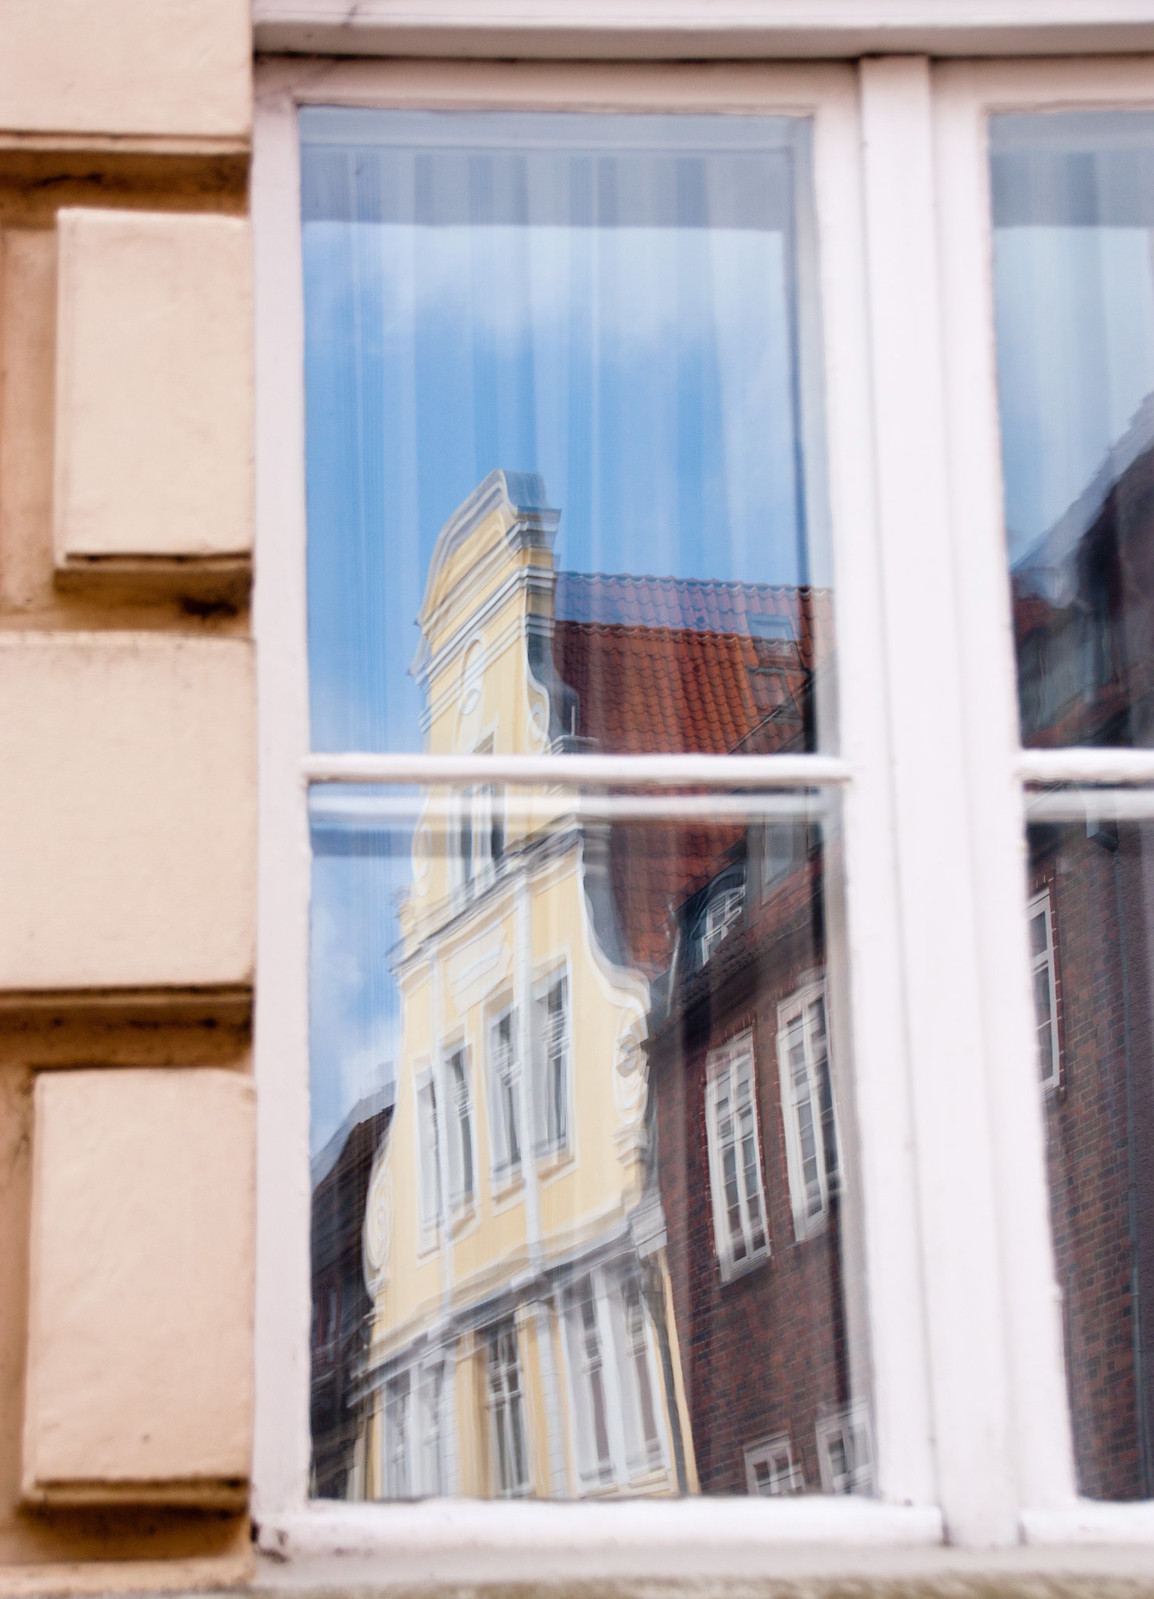 a window in Stralsund